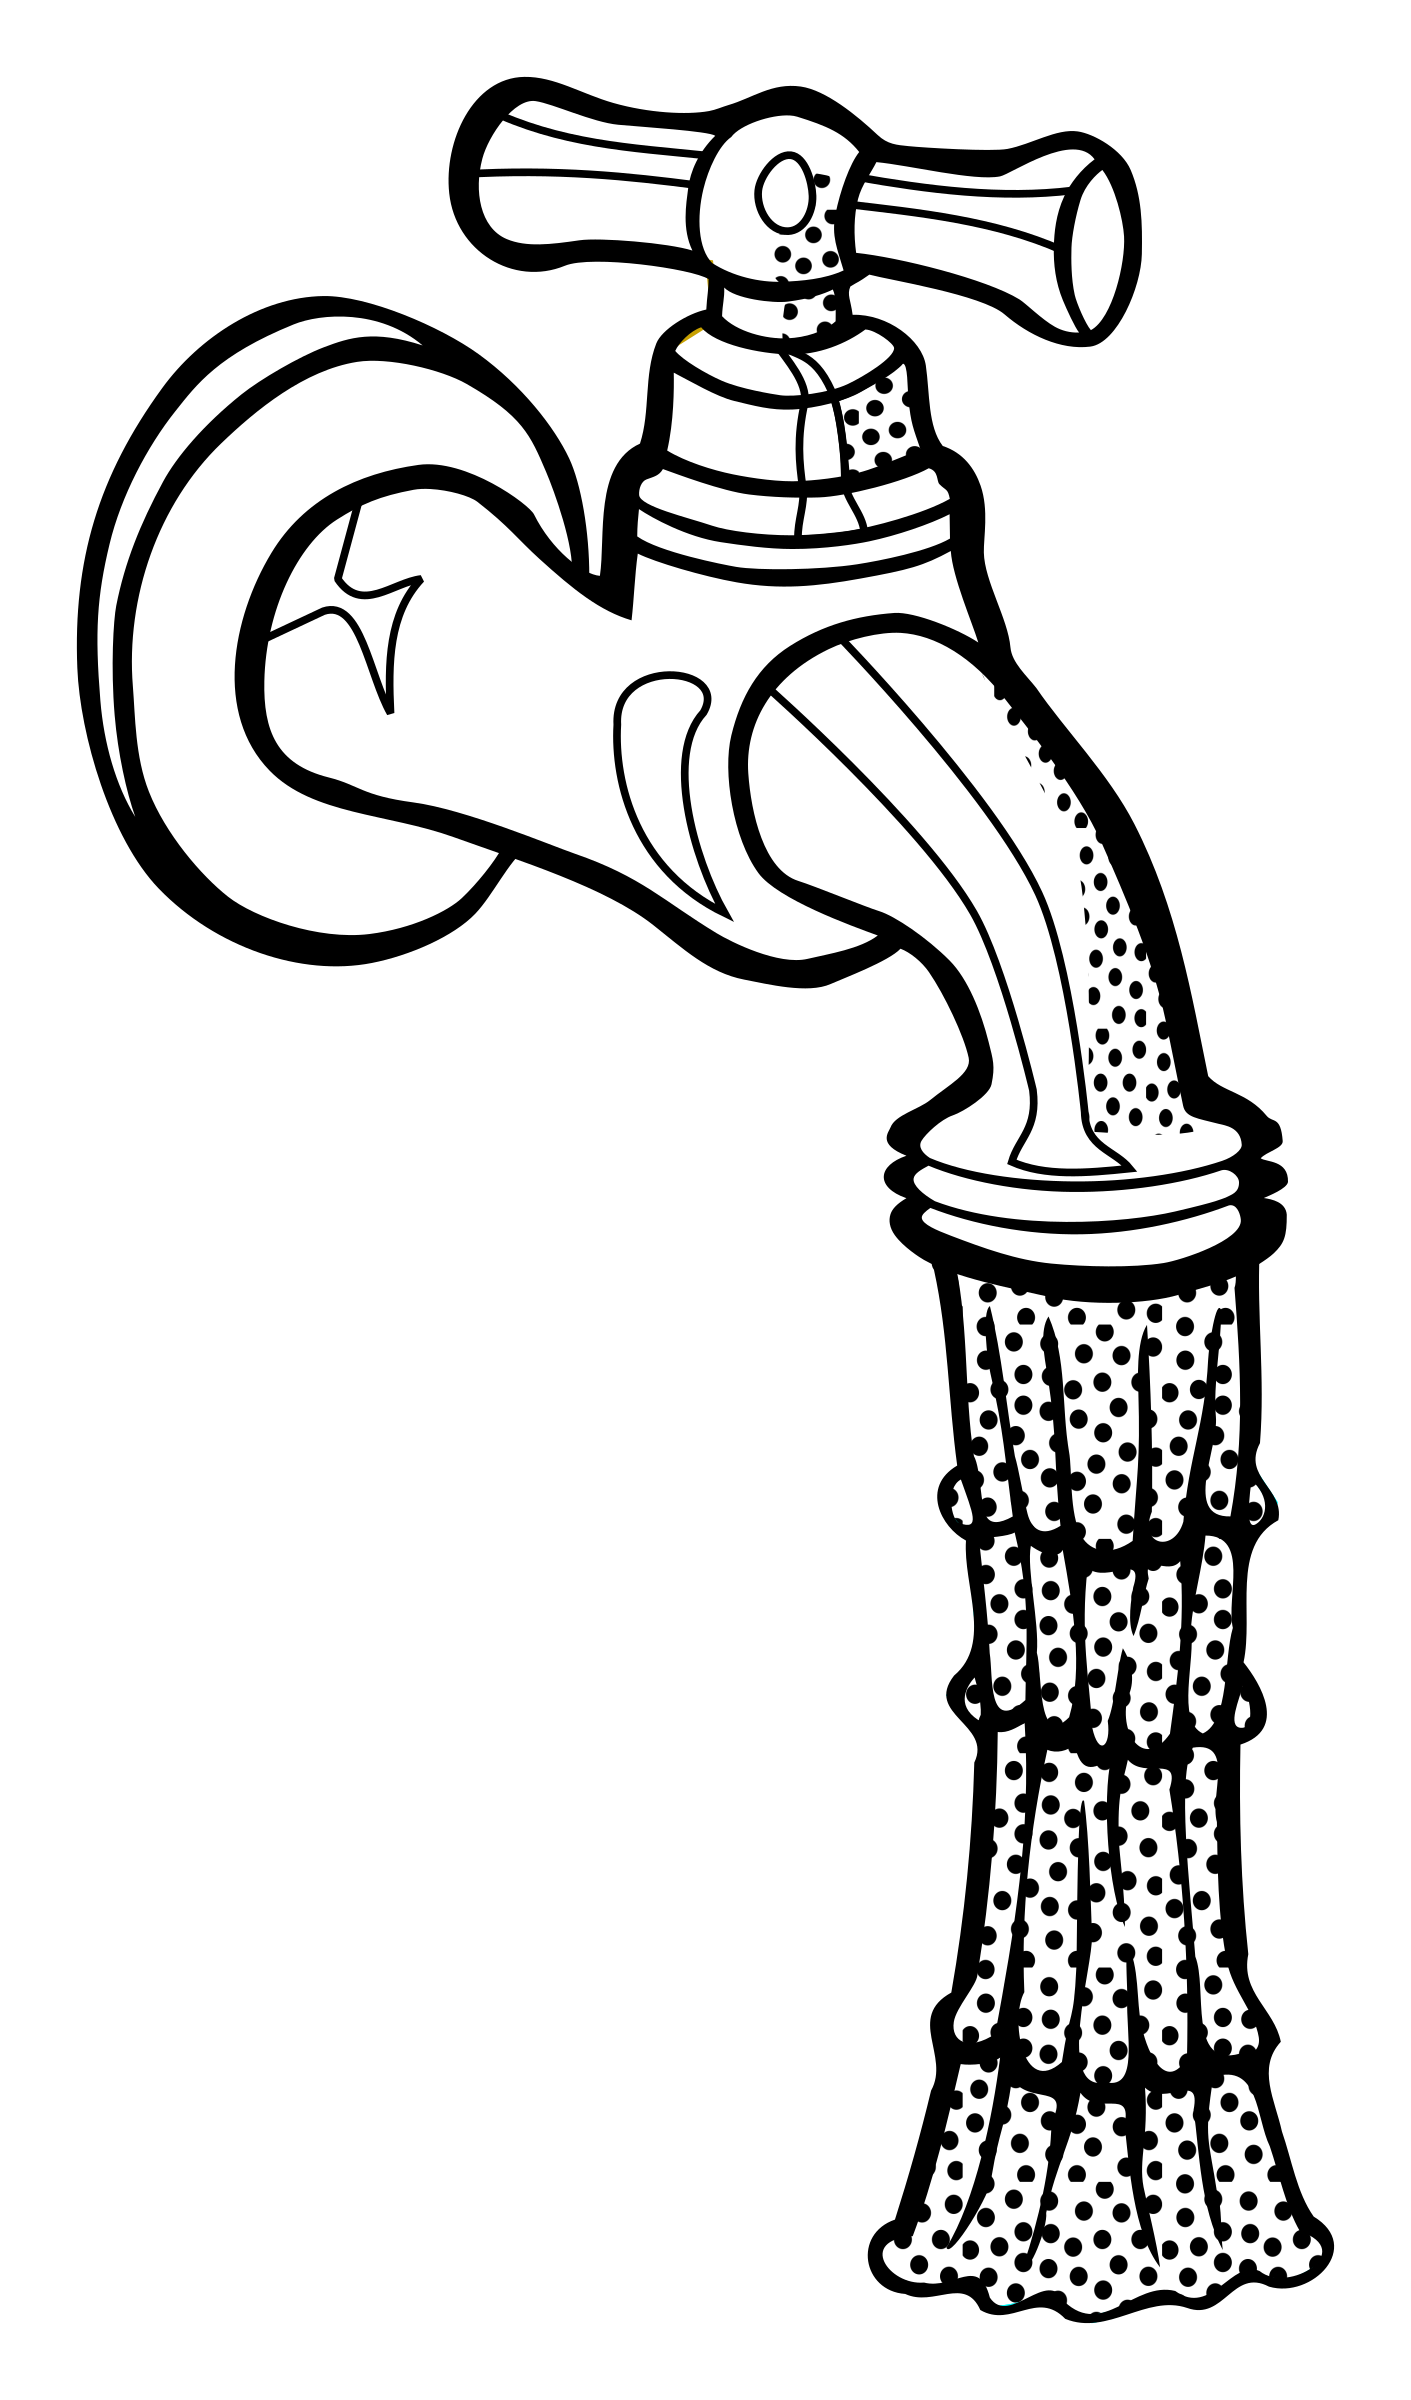 graphic download Water faucet clipart black and white. Line drawing at getdrawings